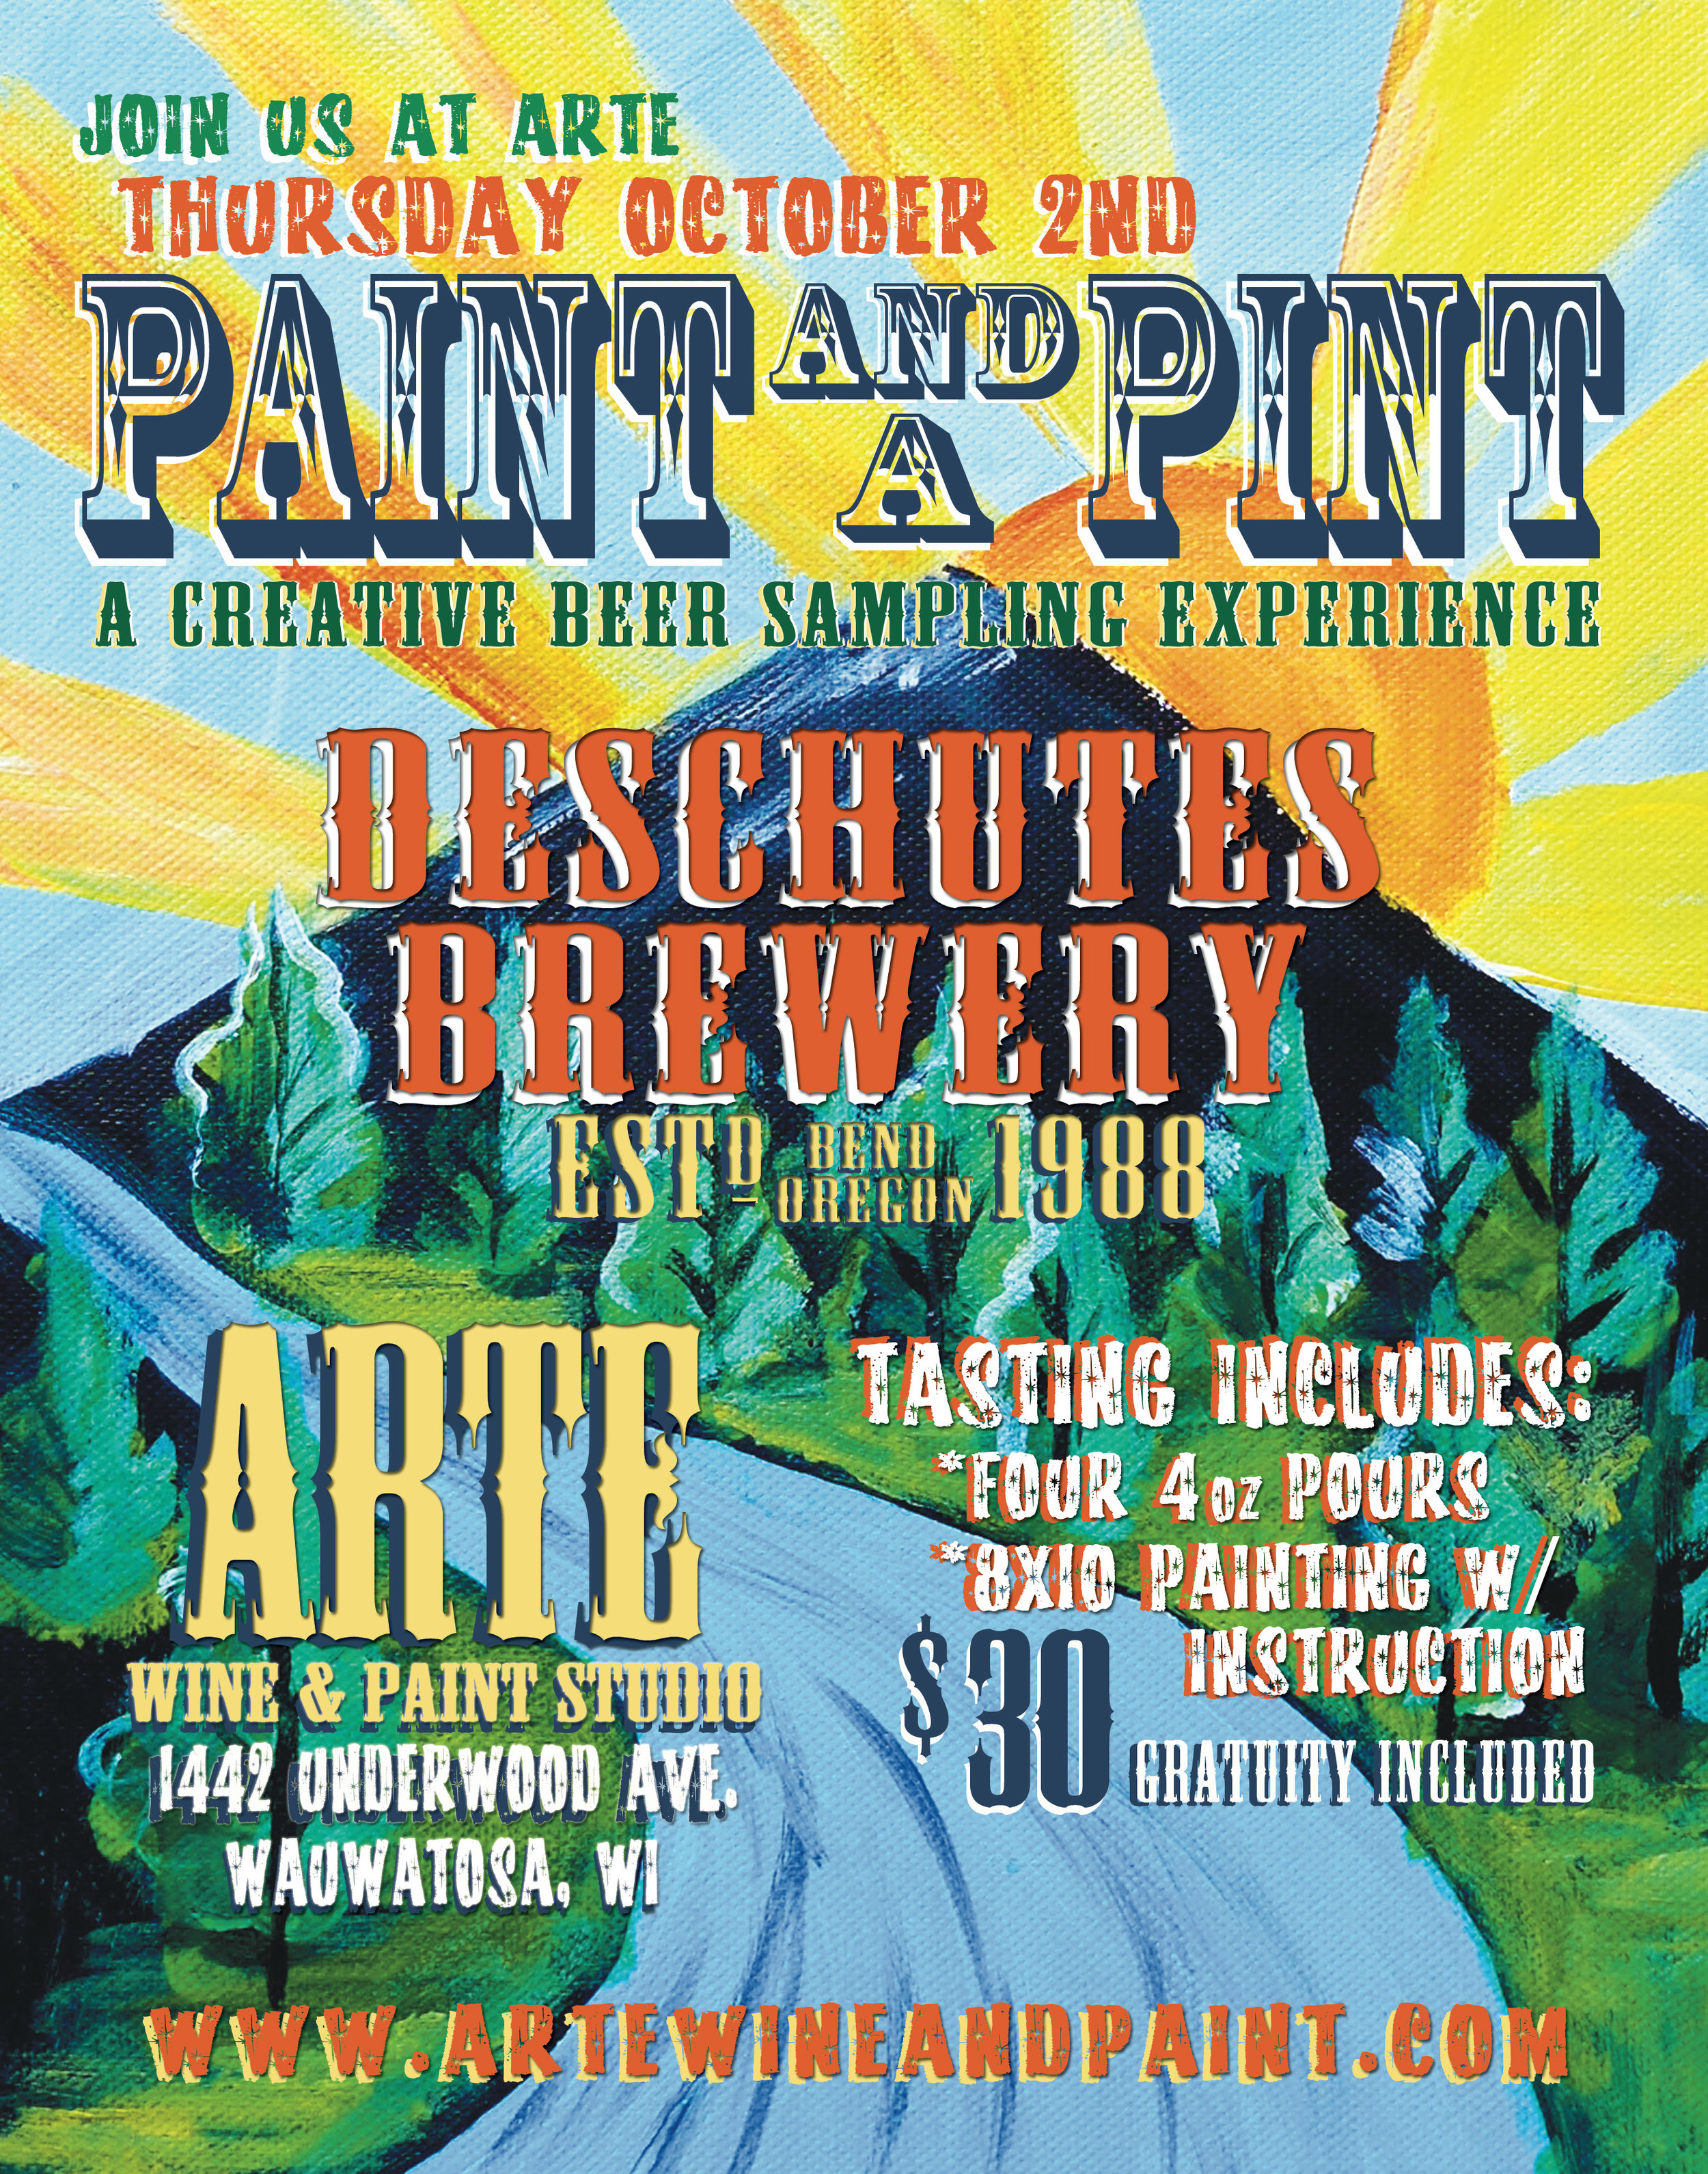 Arte Wine And Paint Wauwatosa Paint And A Pint A Creative Beer Tasting Event Arté